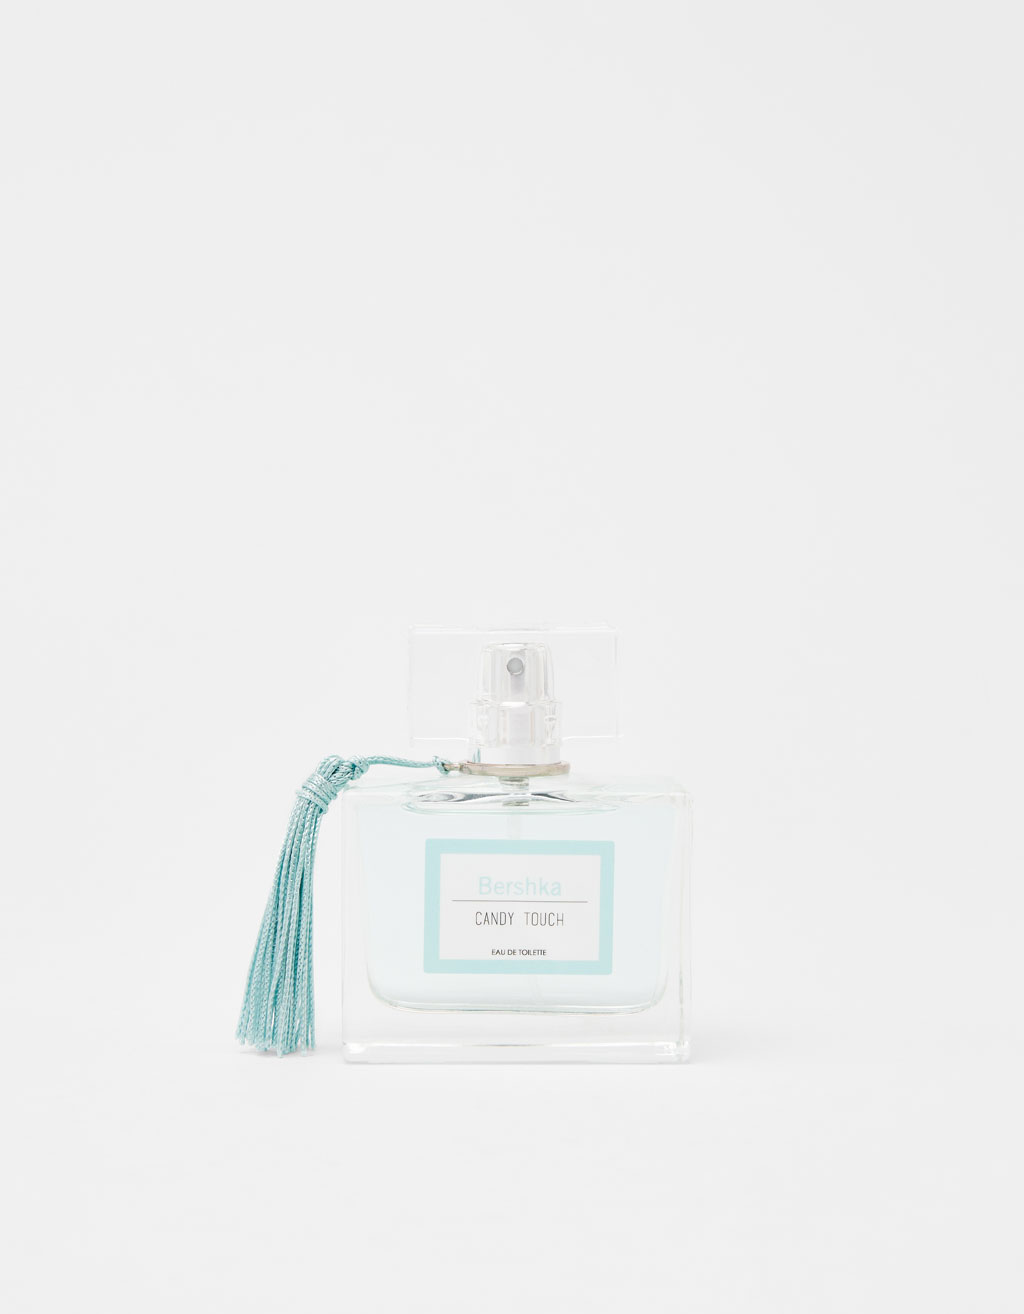 Eau de toilette candy touch 50 ml